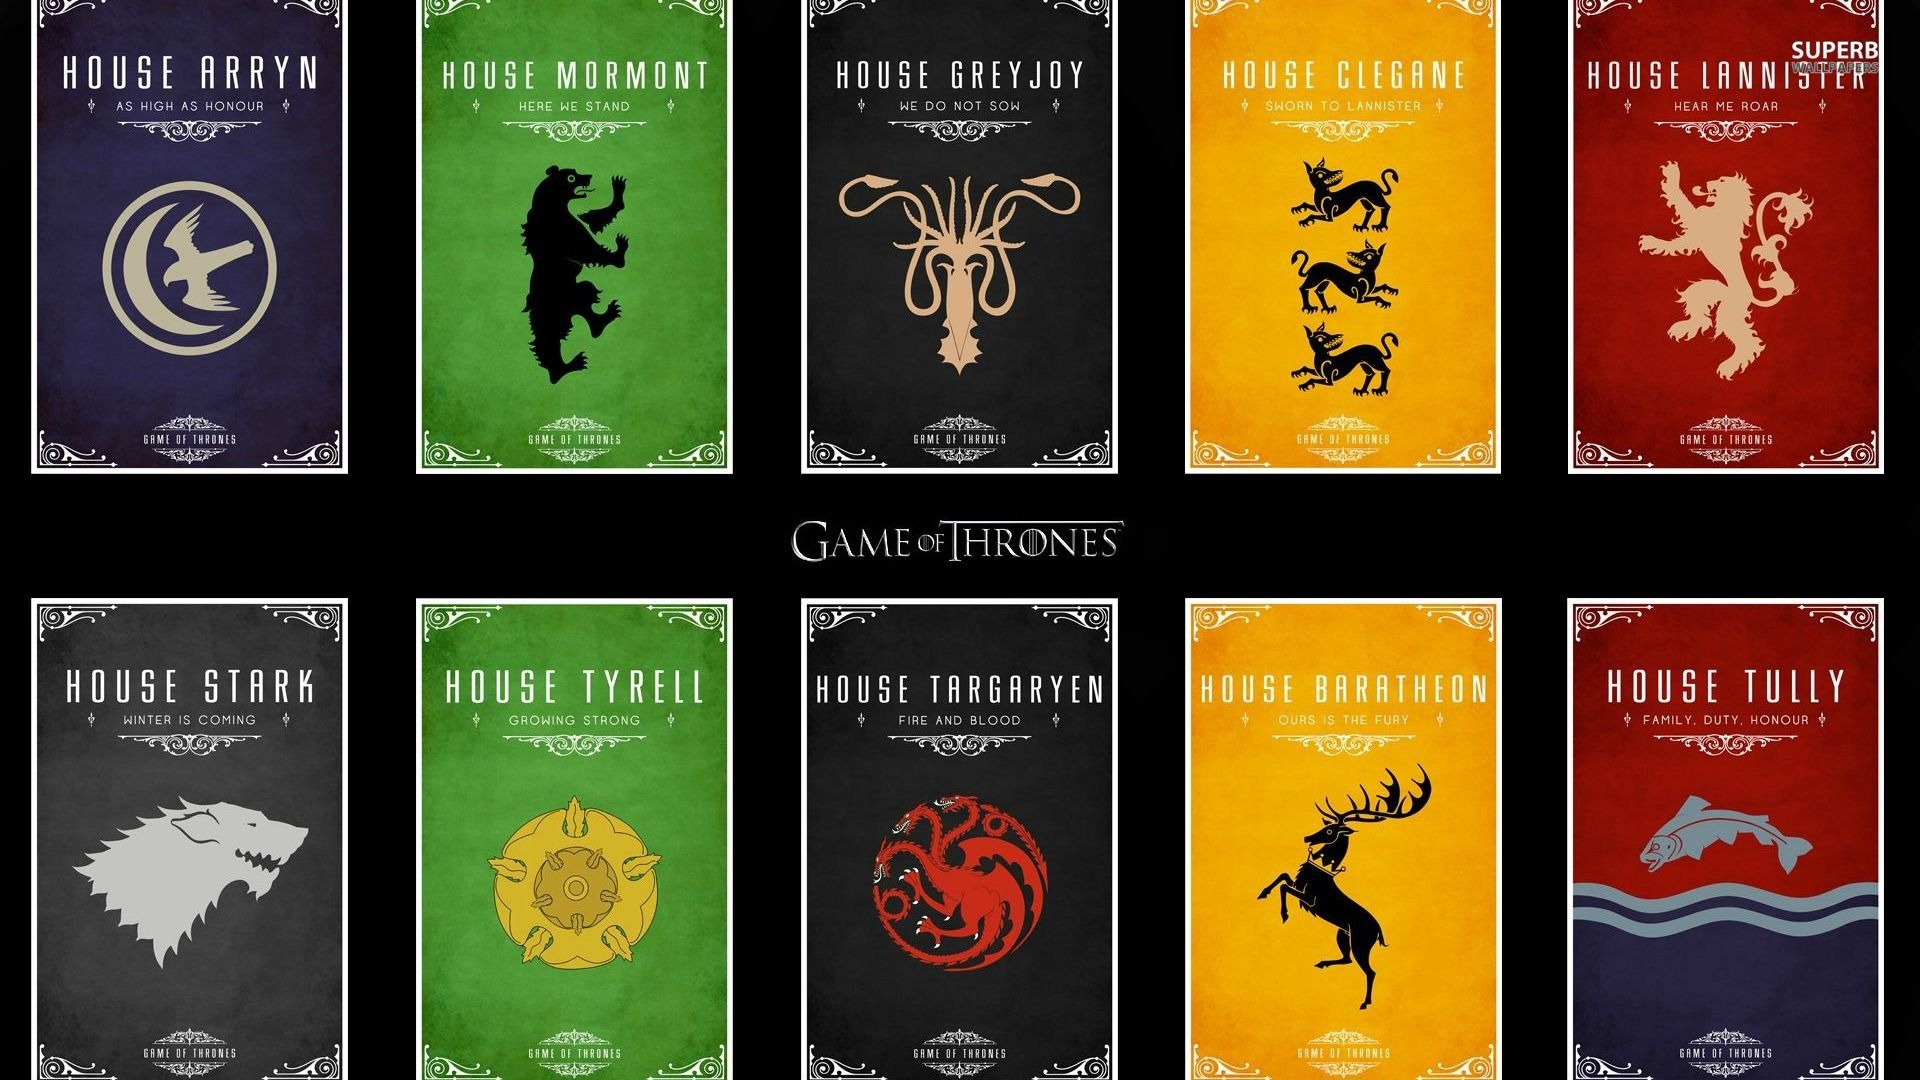 Houses in The Game of Thrones: description, coat of arms, history